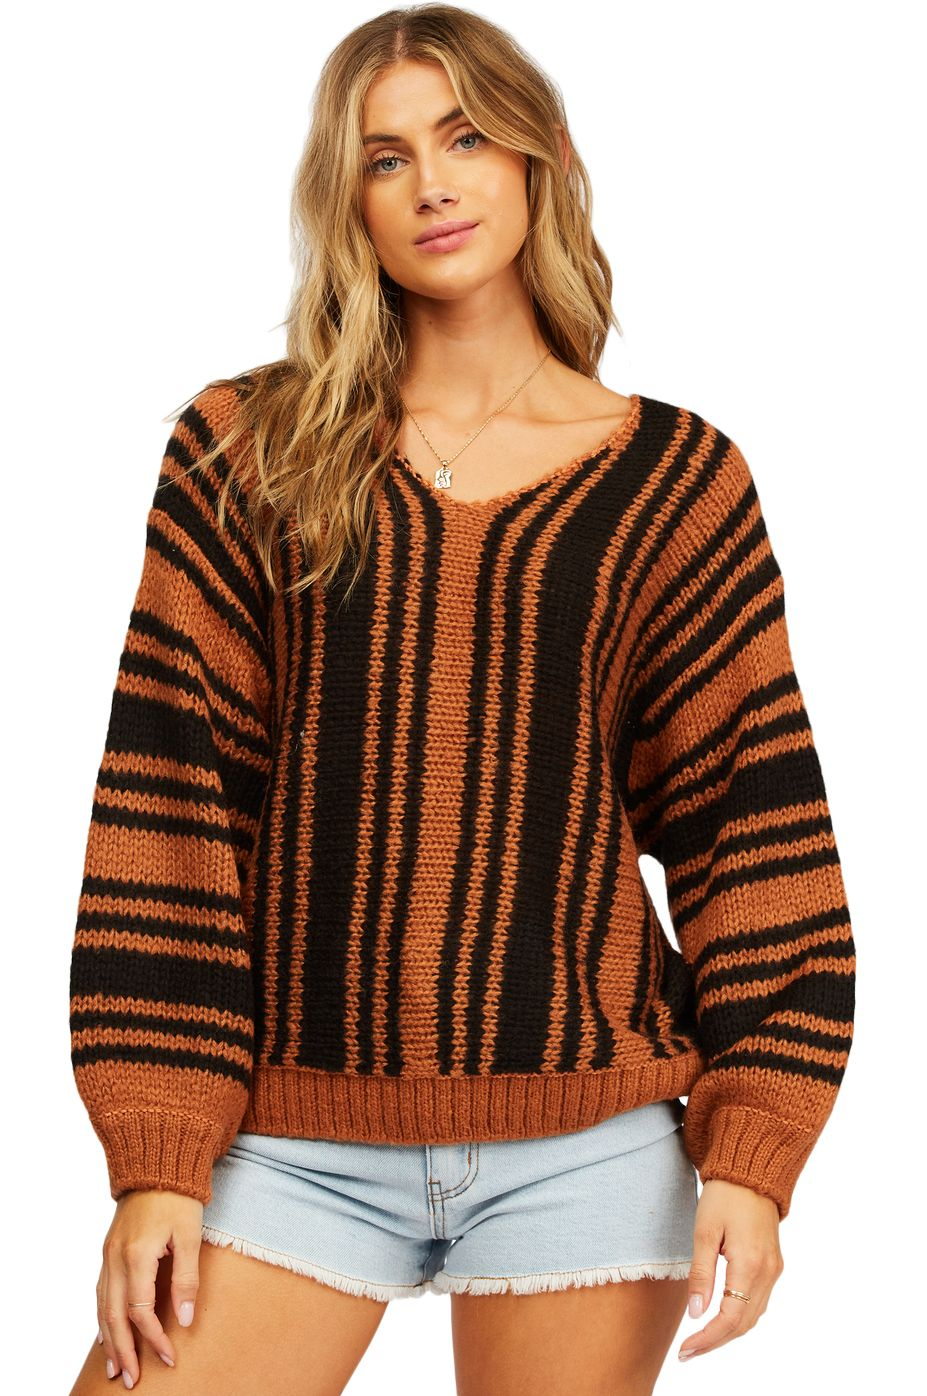 Billabong Sweater LAID BACK PARADISE FOUND Coconut